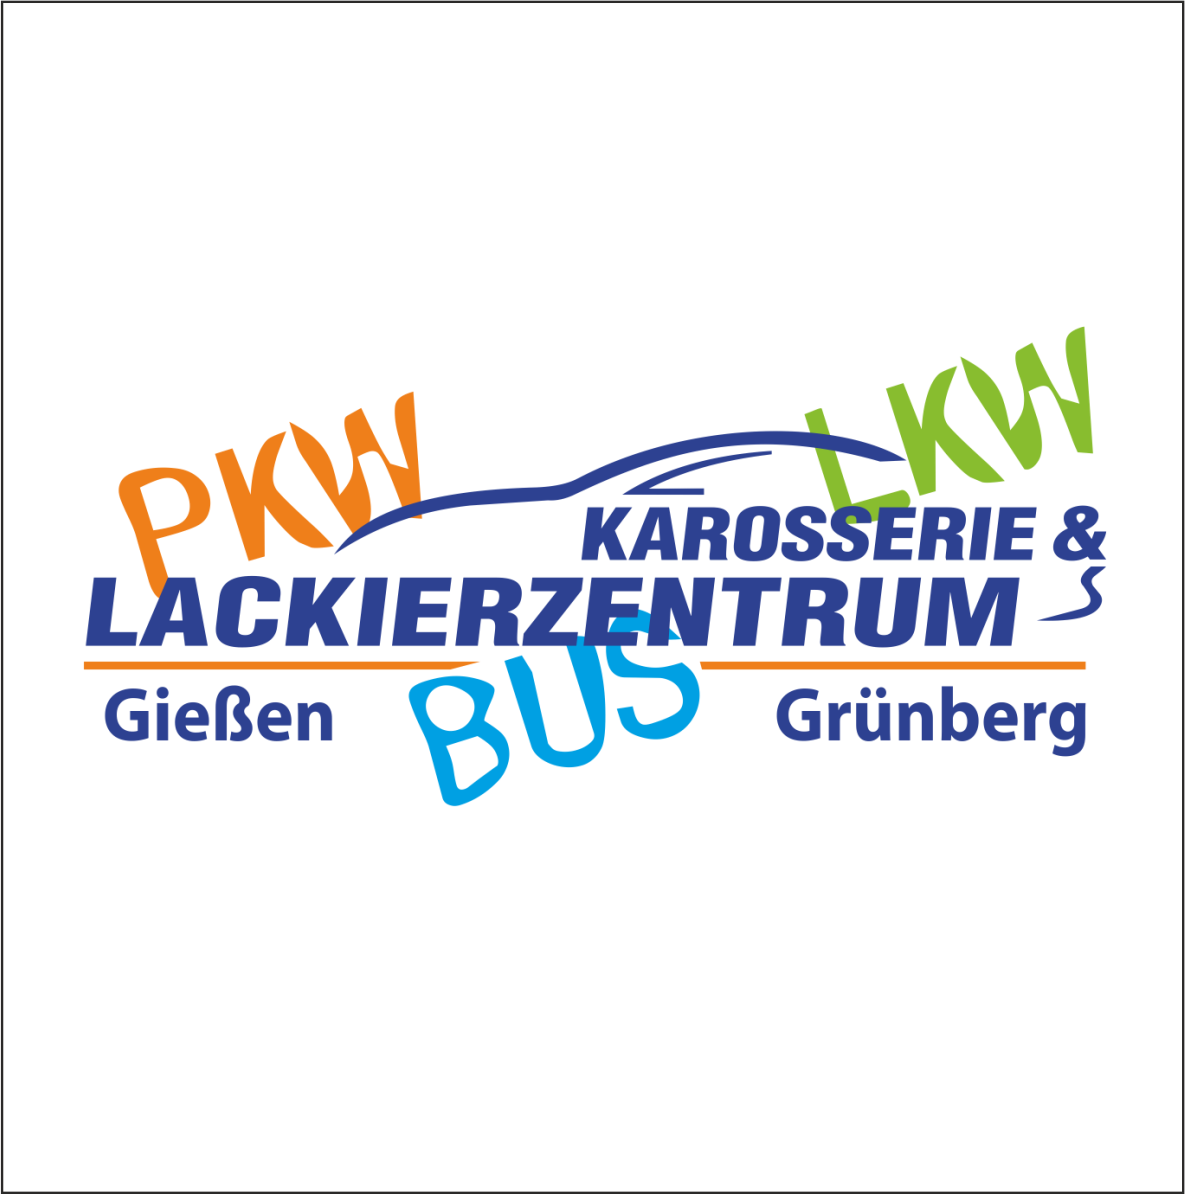 Lackierzentrum